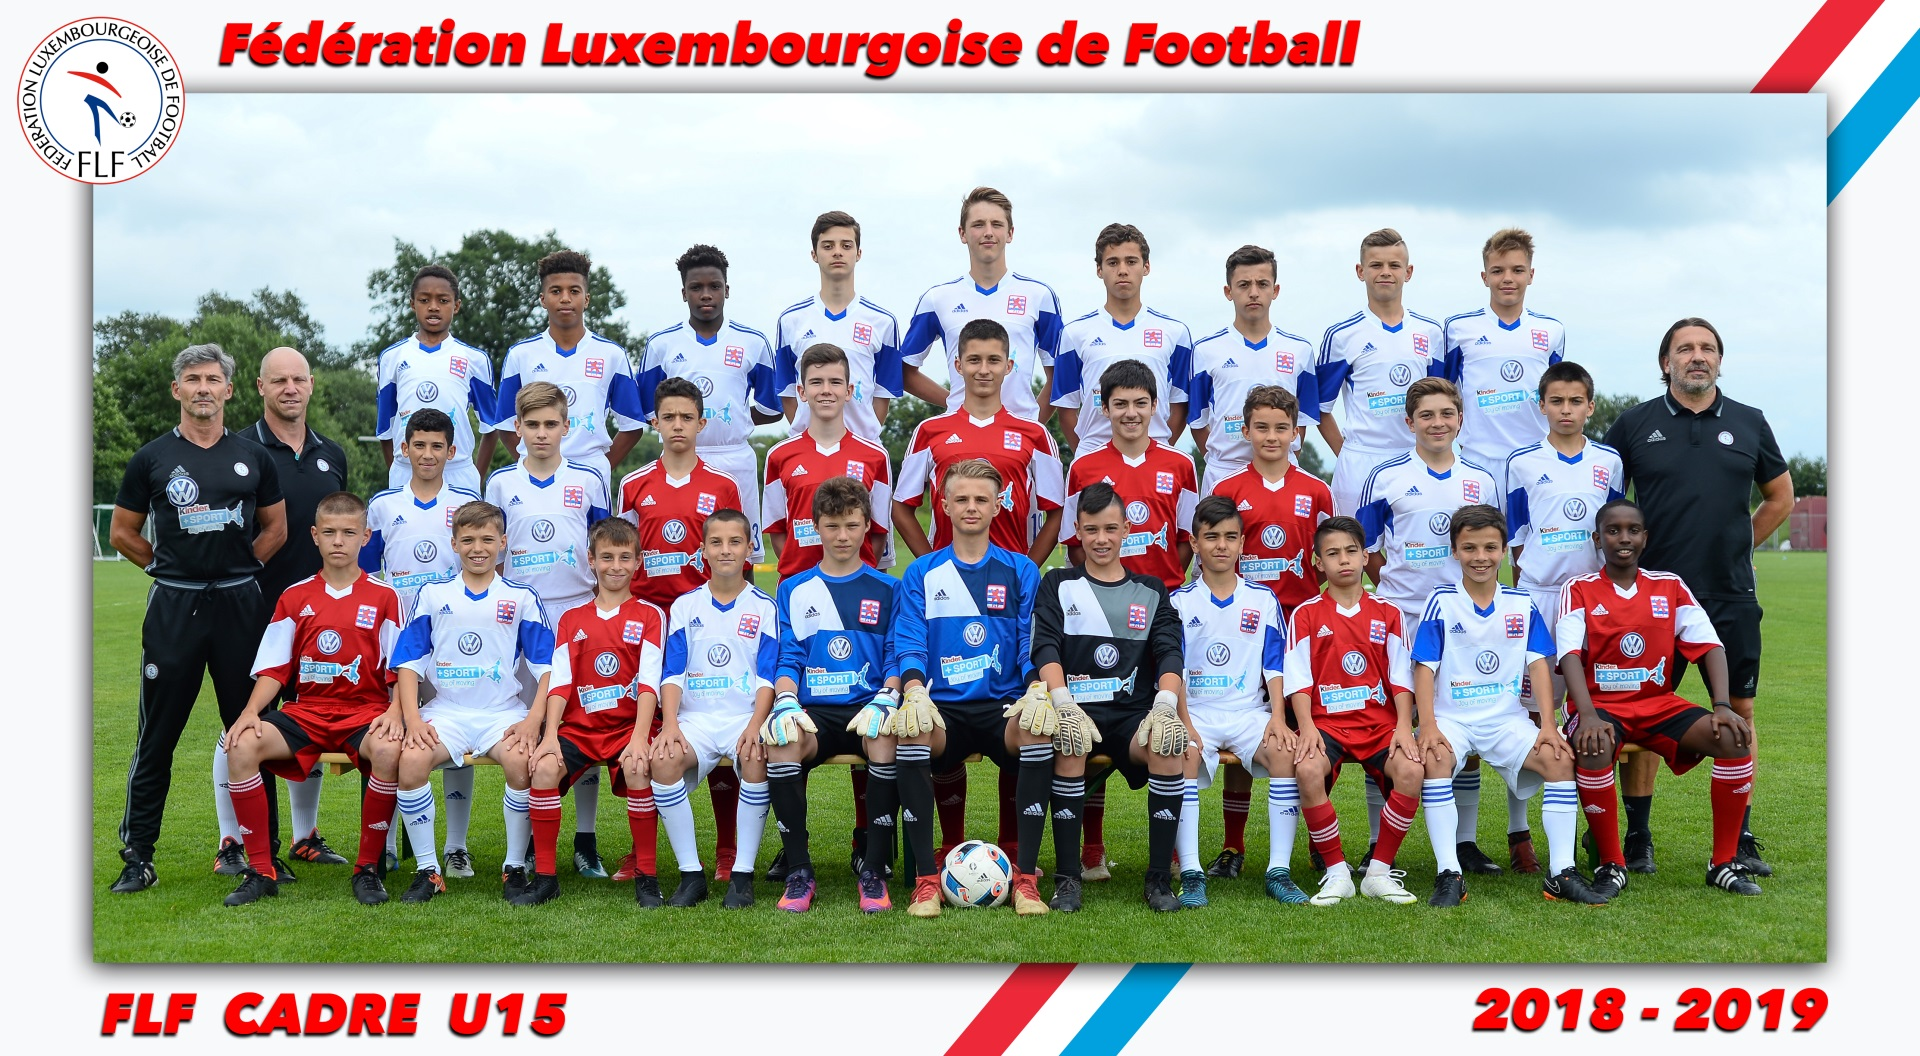 Nationalteam Luxemburg